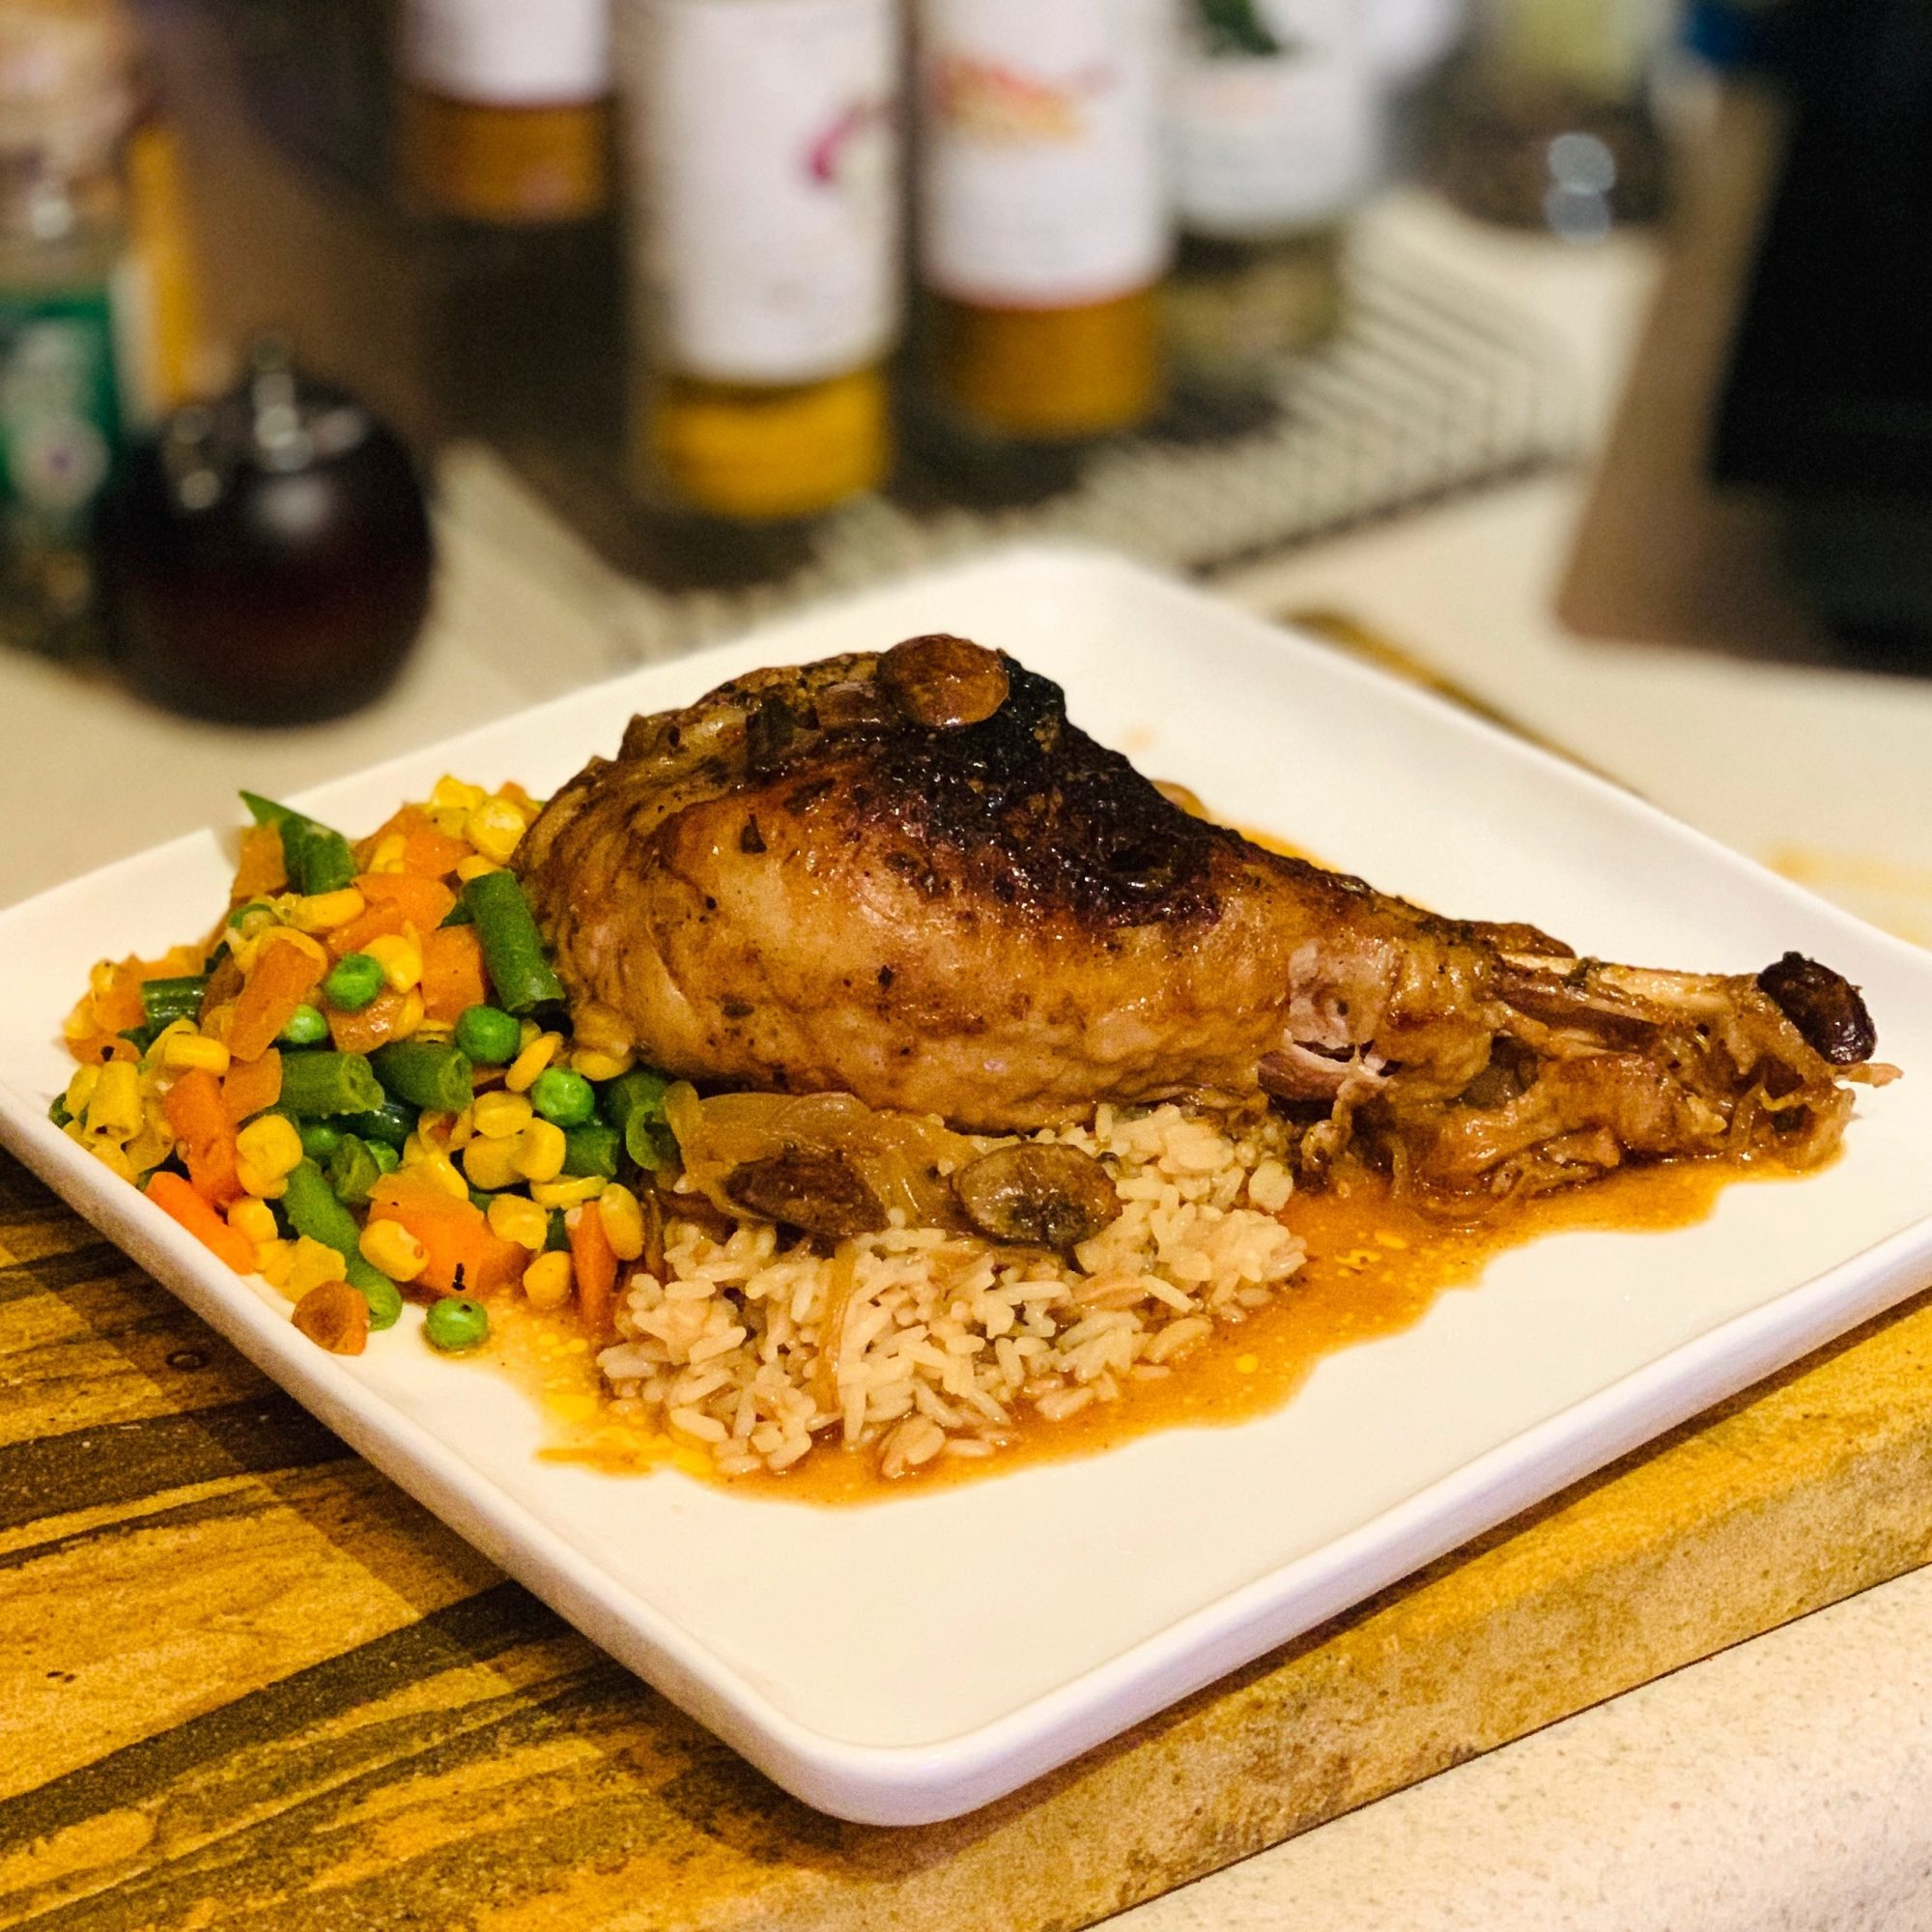 turkey leg on a plate with rice and mixed veggies